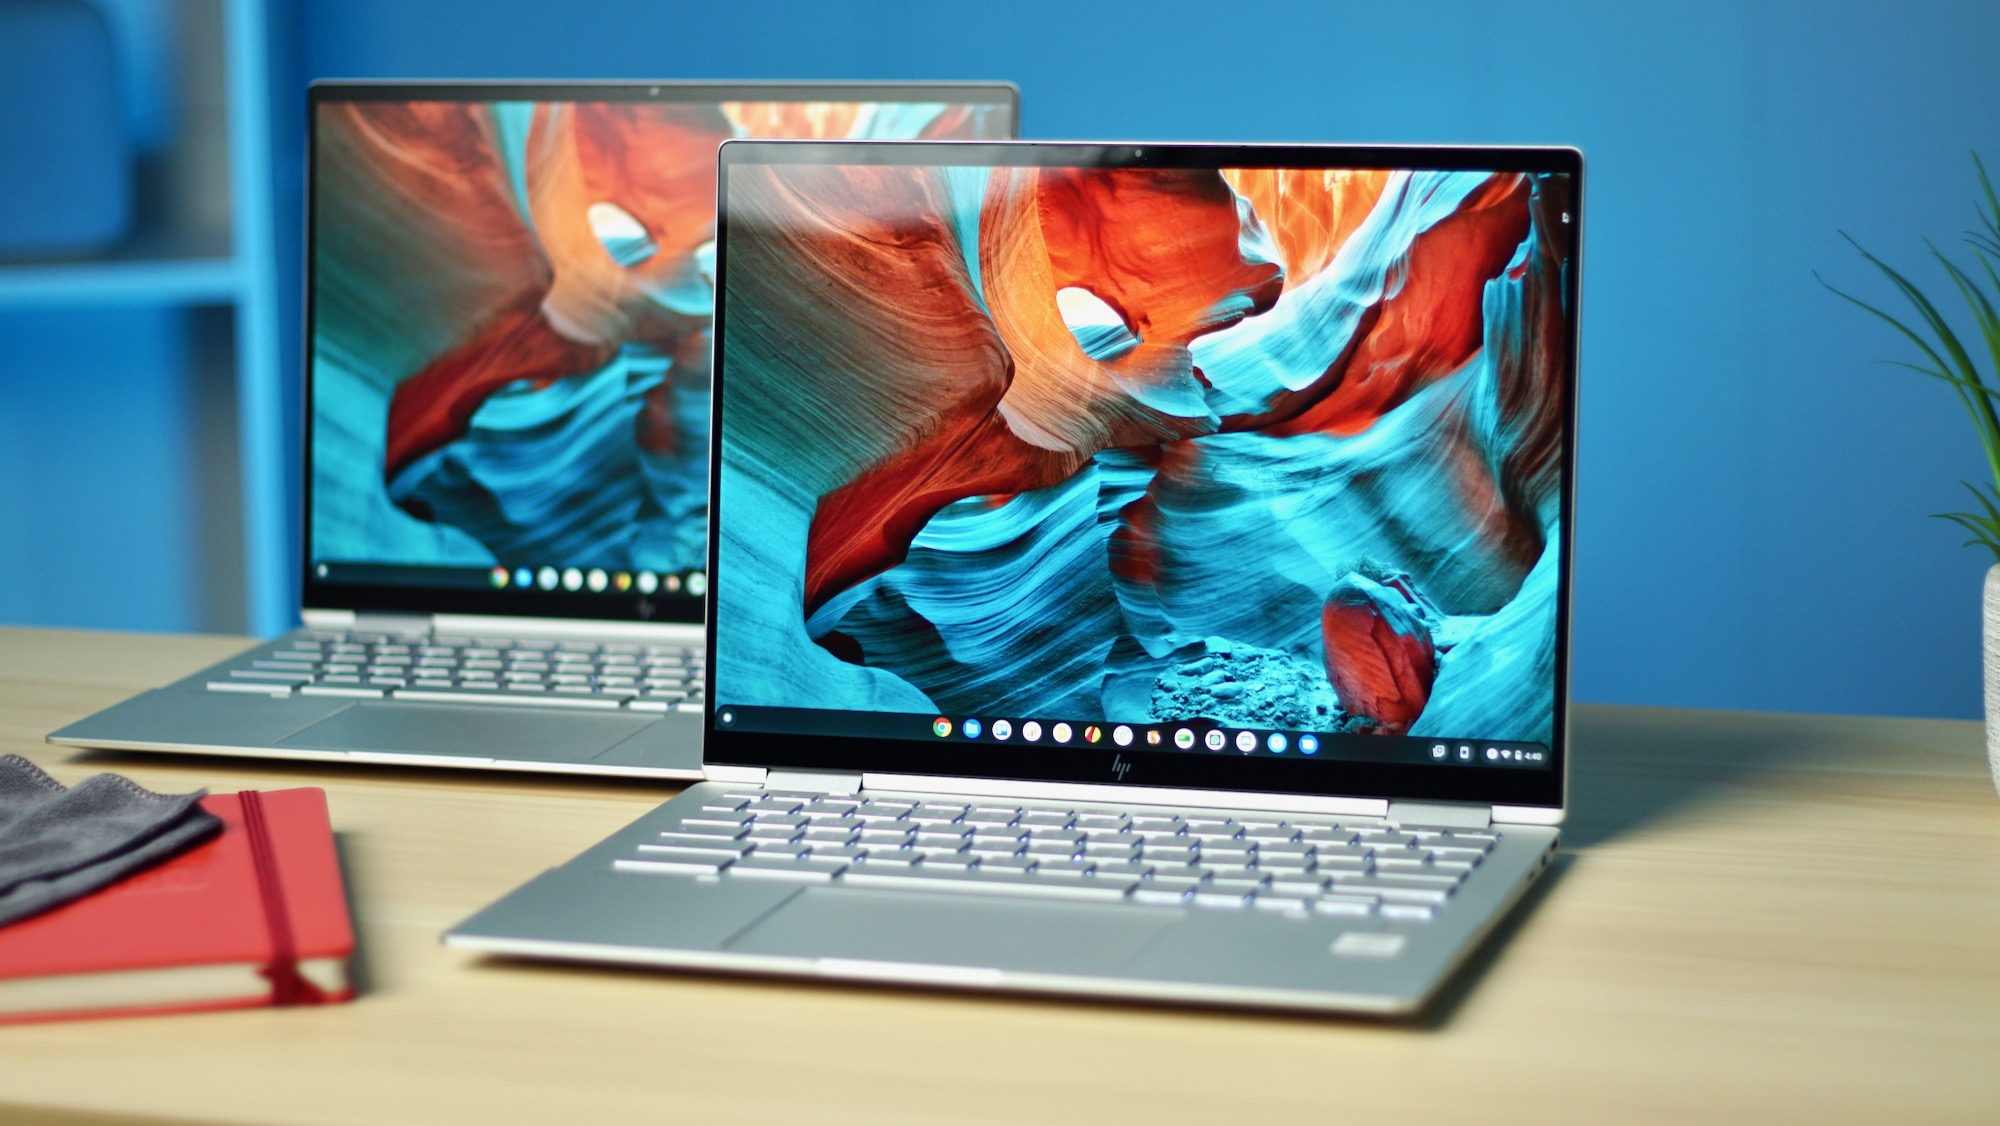 HP Chromebook x360 13c and the Elite c1030: clearing up the confusion [VIDEO]